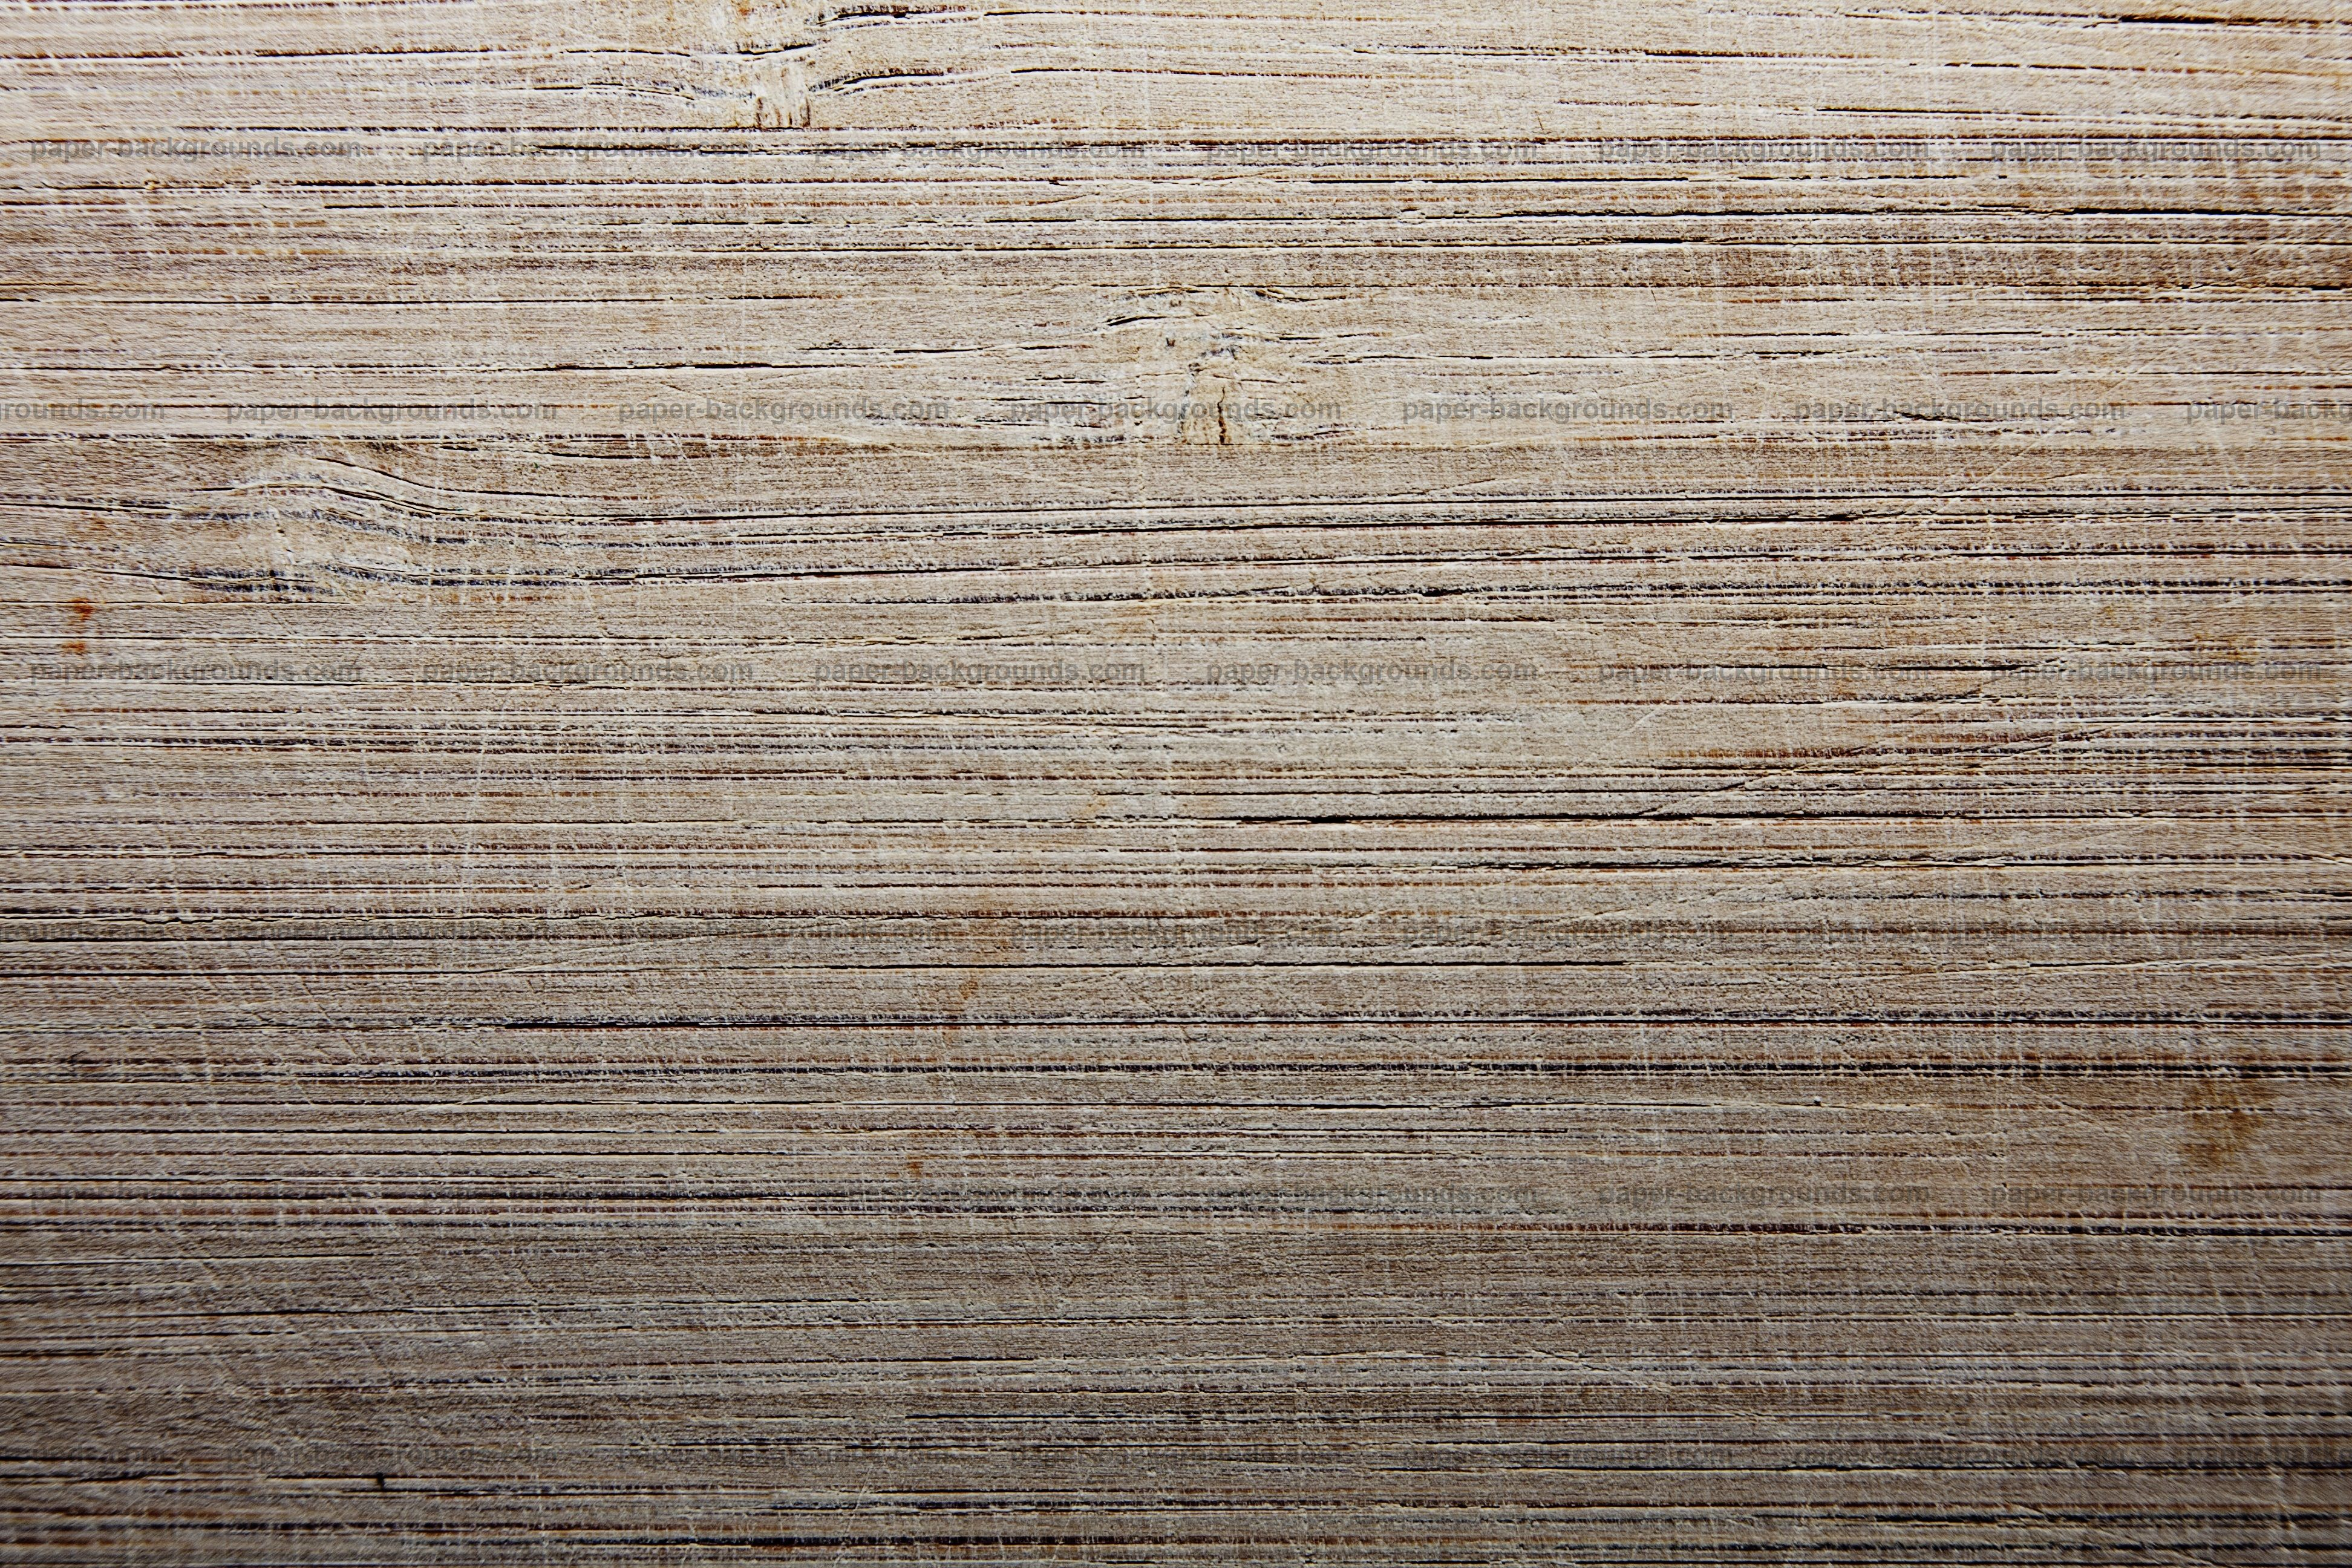 Old Wood Texture Background HD Paper Backgrounds